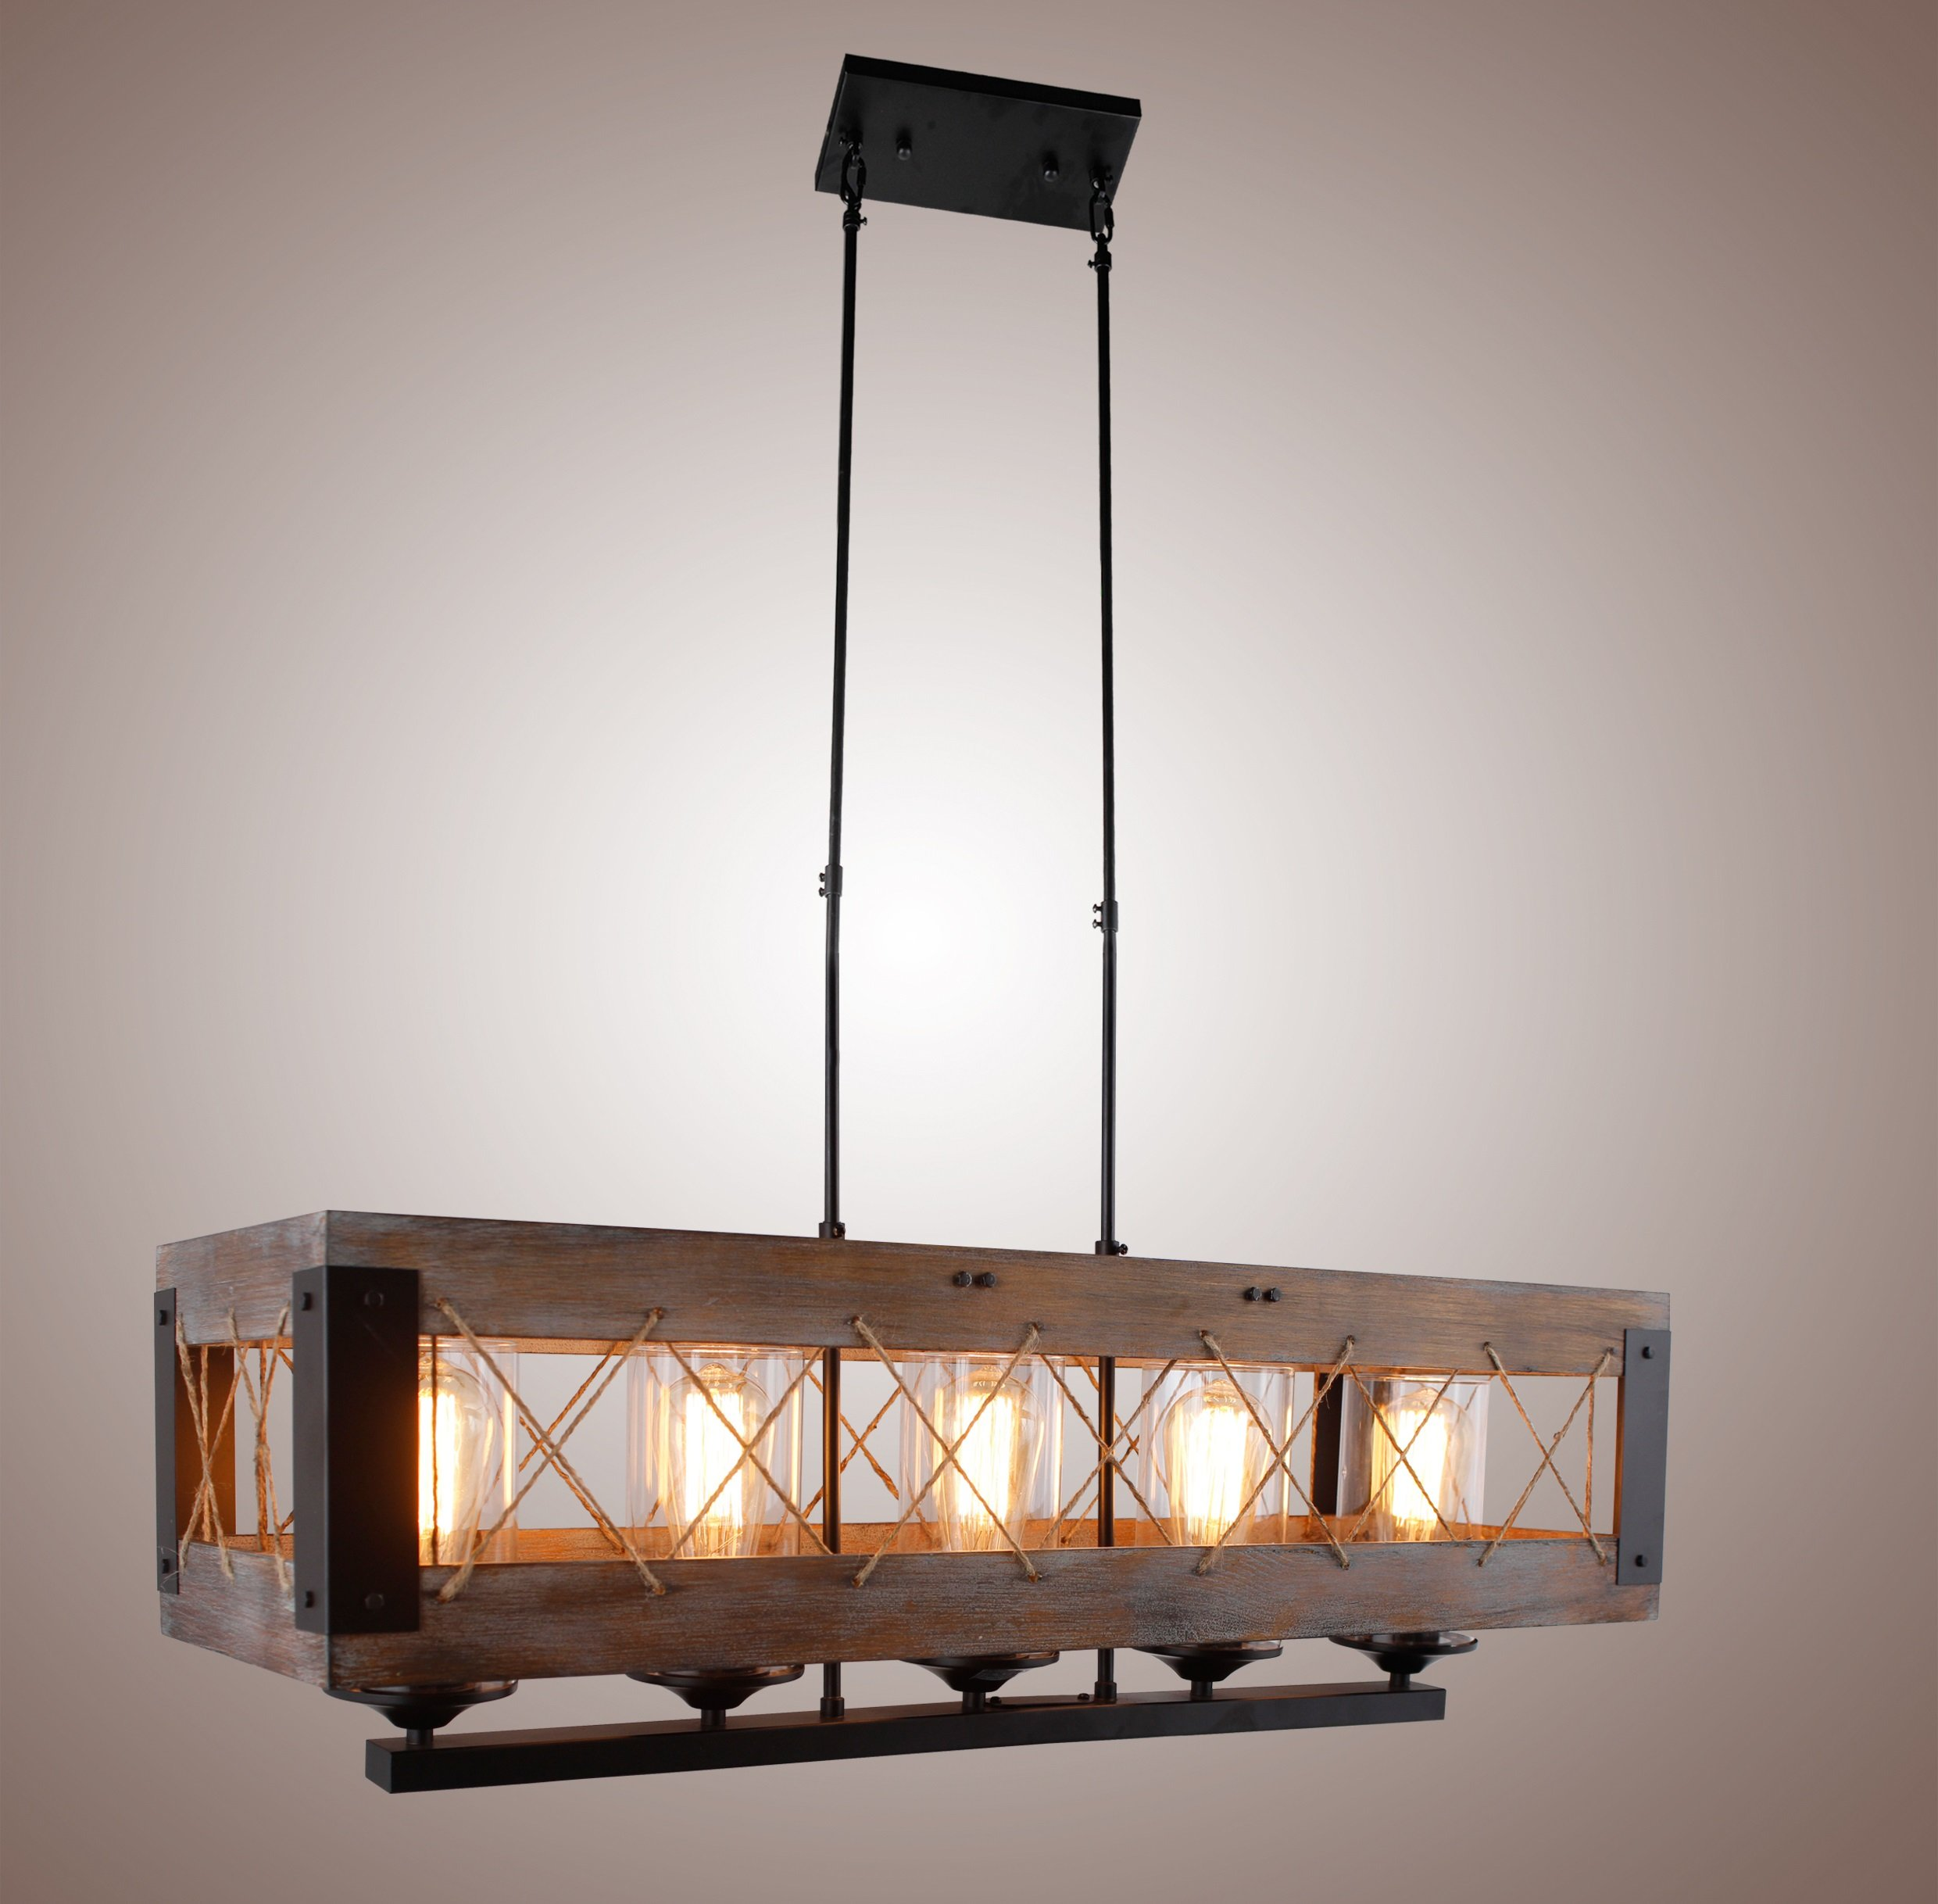 Cheap Hanging Lights Over Kitchen Island Find Hanging Lights Over Kitchen Island Deals On Line At Alibaba Com